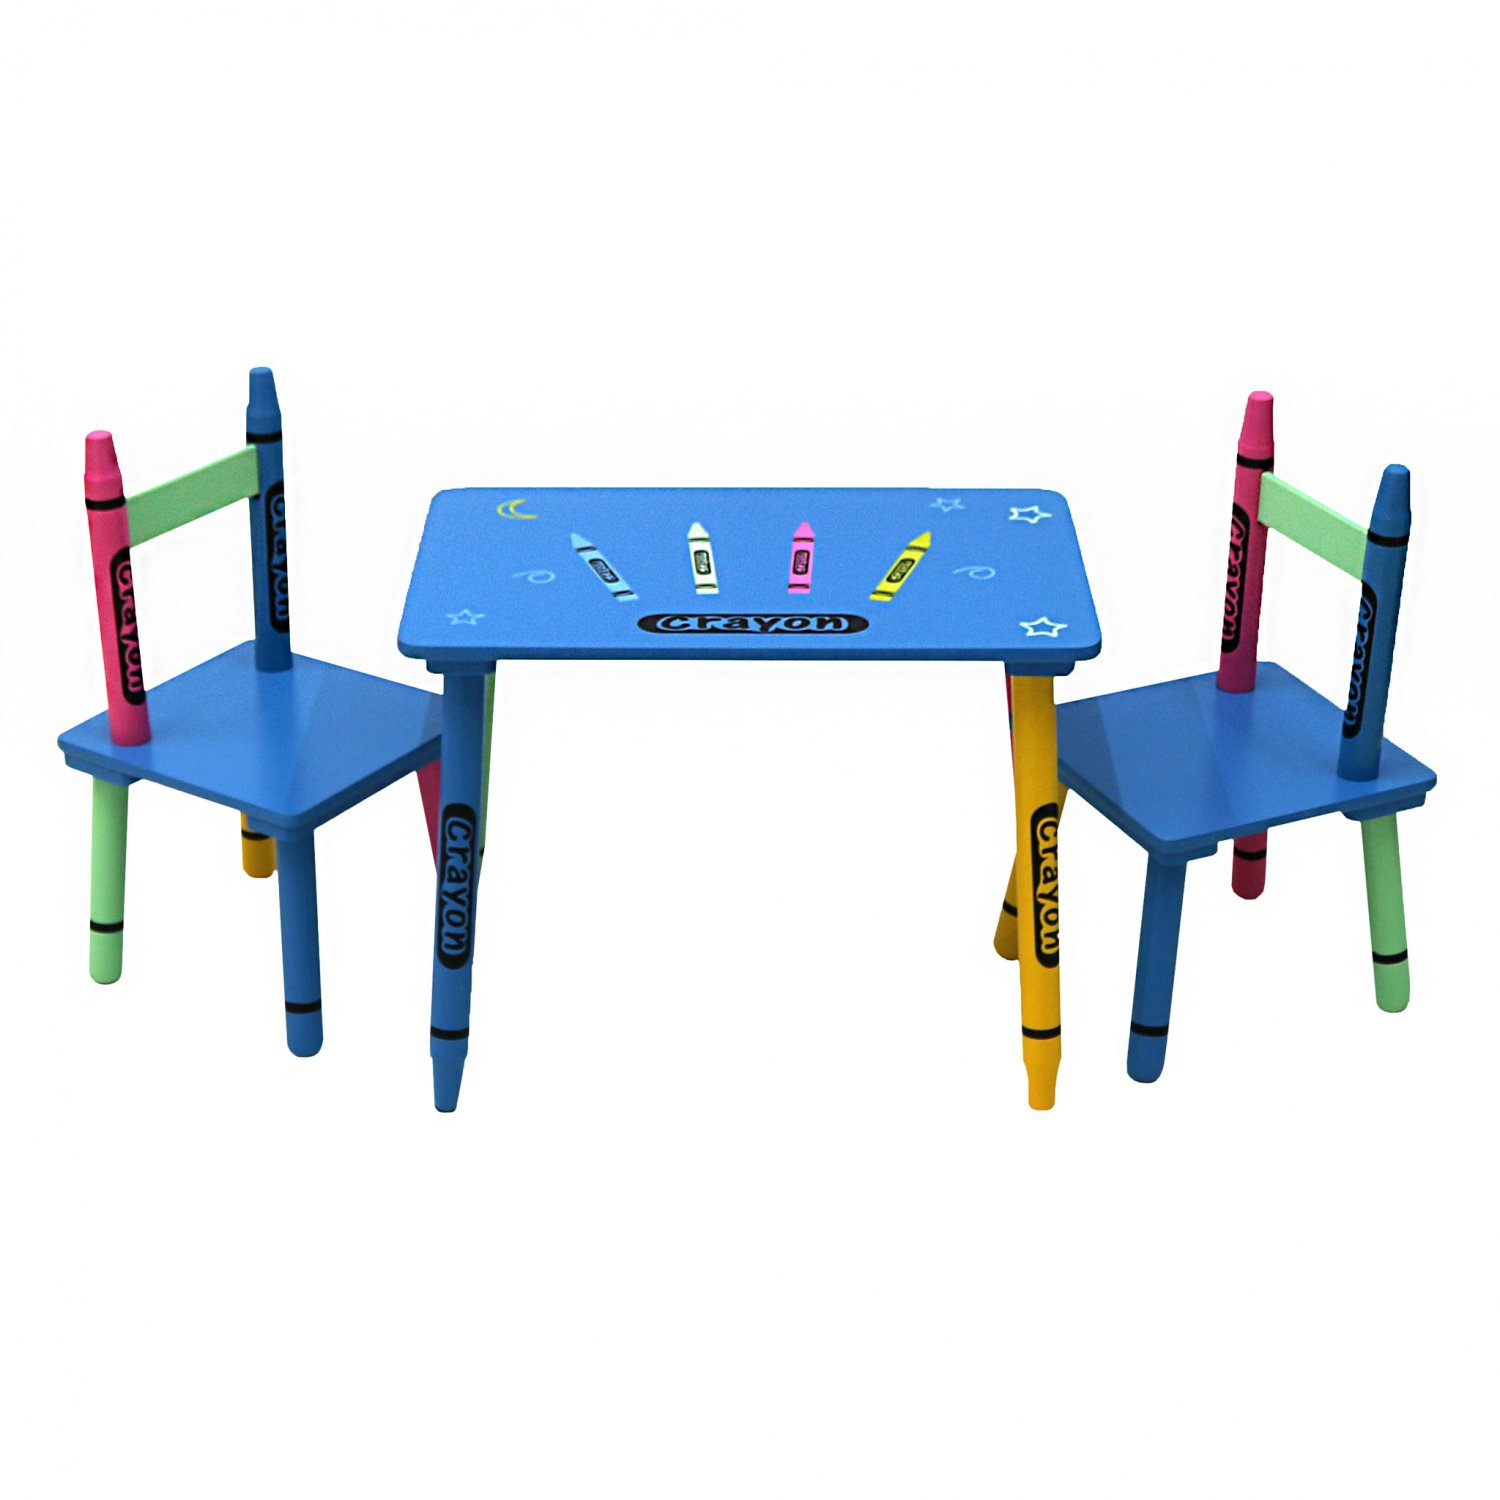 Girls Kids Childrens Wooden Nursery Bedroom Furniture Toy: Childrens Wooden Crayon Table And Chairs Set Kids Room